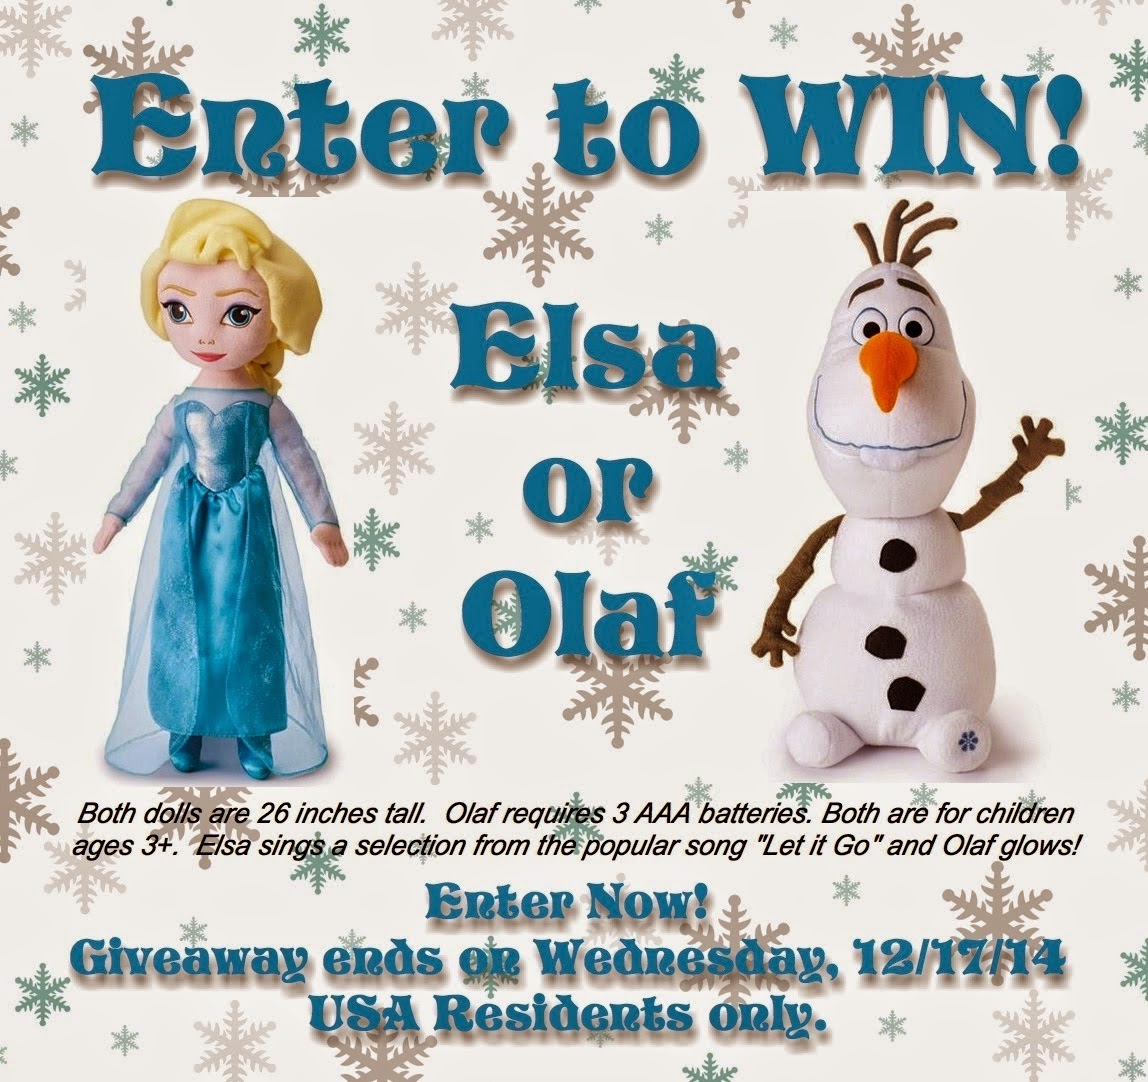 Win Disney Frozen Dolls